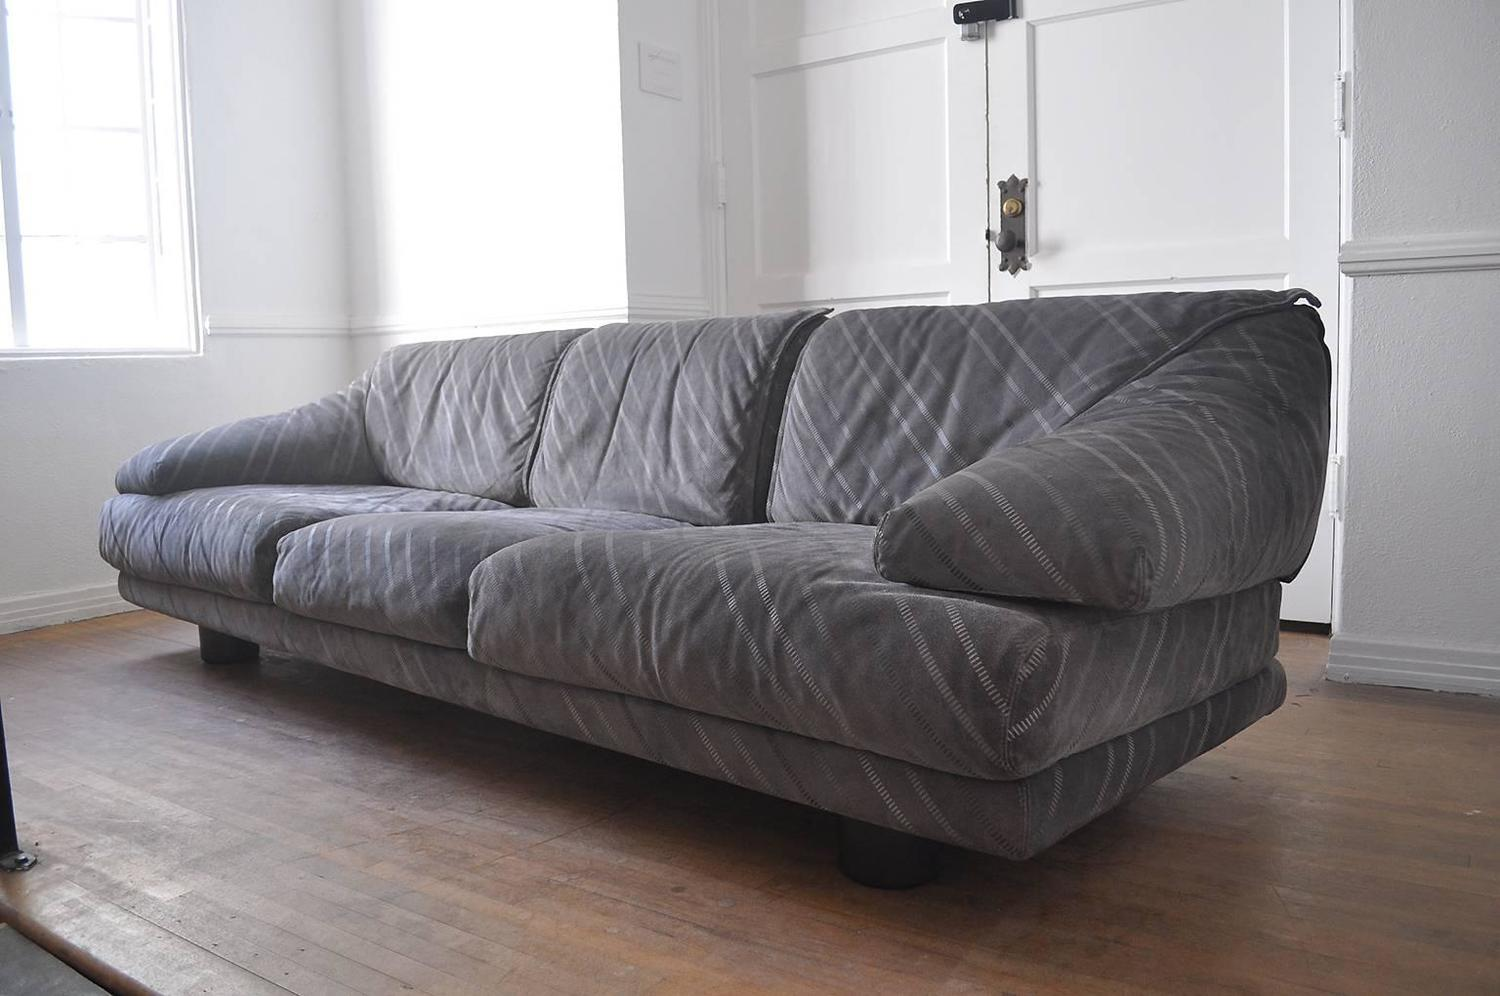 Saporiti suede three seat sofa for sale at 1stdibs for Suede couches for sale